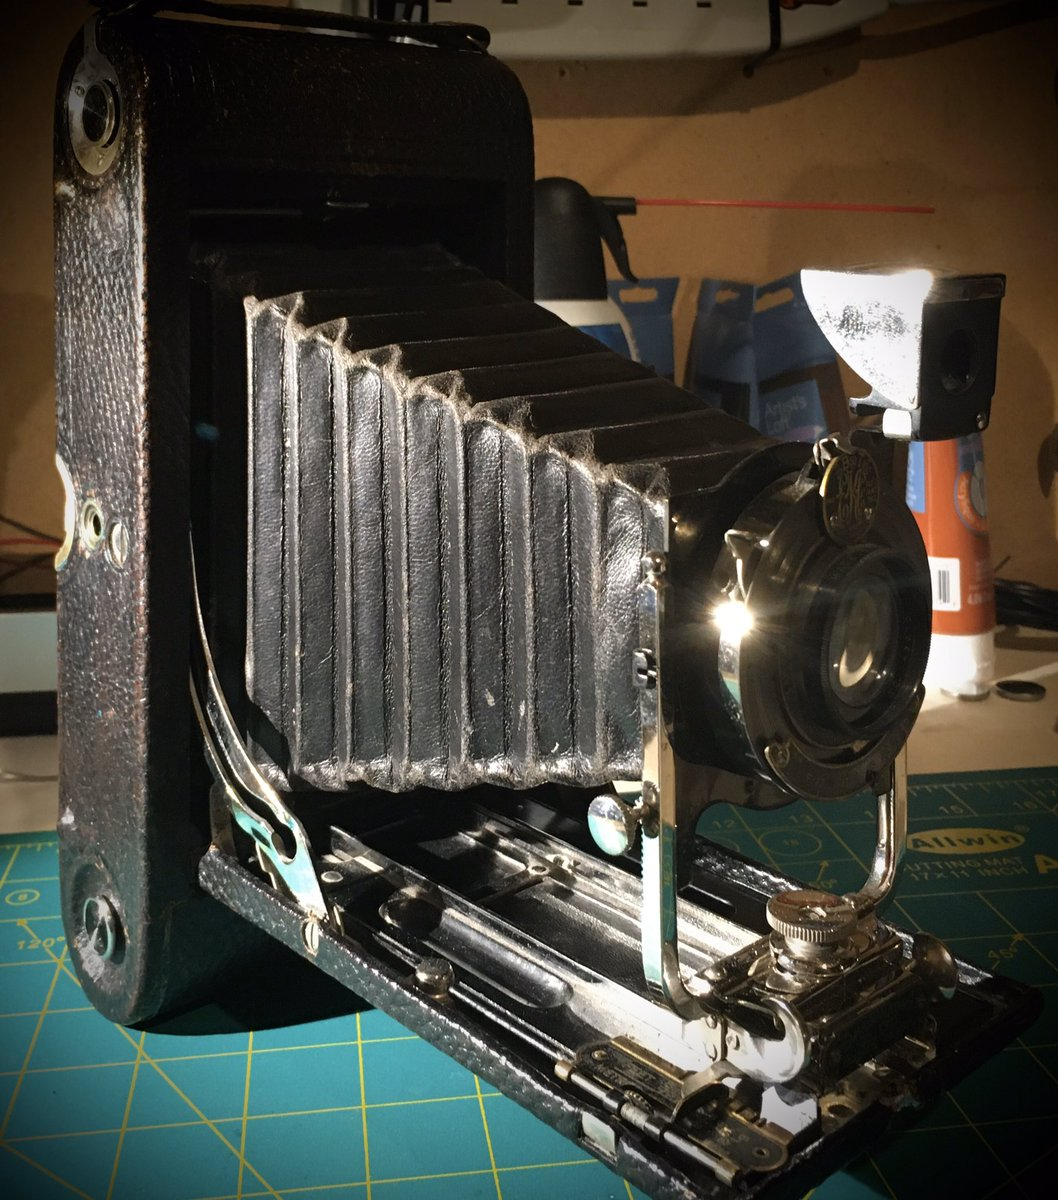 ~1916 A3 Autographic Kodak camera w/ film still in it. It's a fav. in my collection. Anyone in the #Calgary area have a clue how to extract/handle/develop very old film? Cost? Odds that the film will actually produce photos?  #photography #film #kodak #kodakfilm #oldschoolpic.twitter.com/OfMsCgQzaP